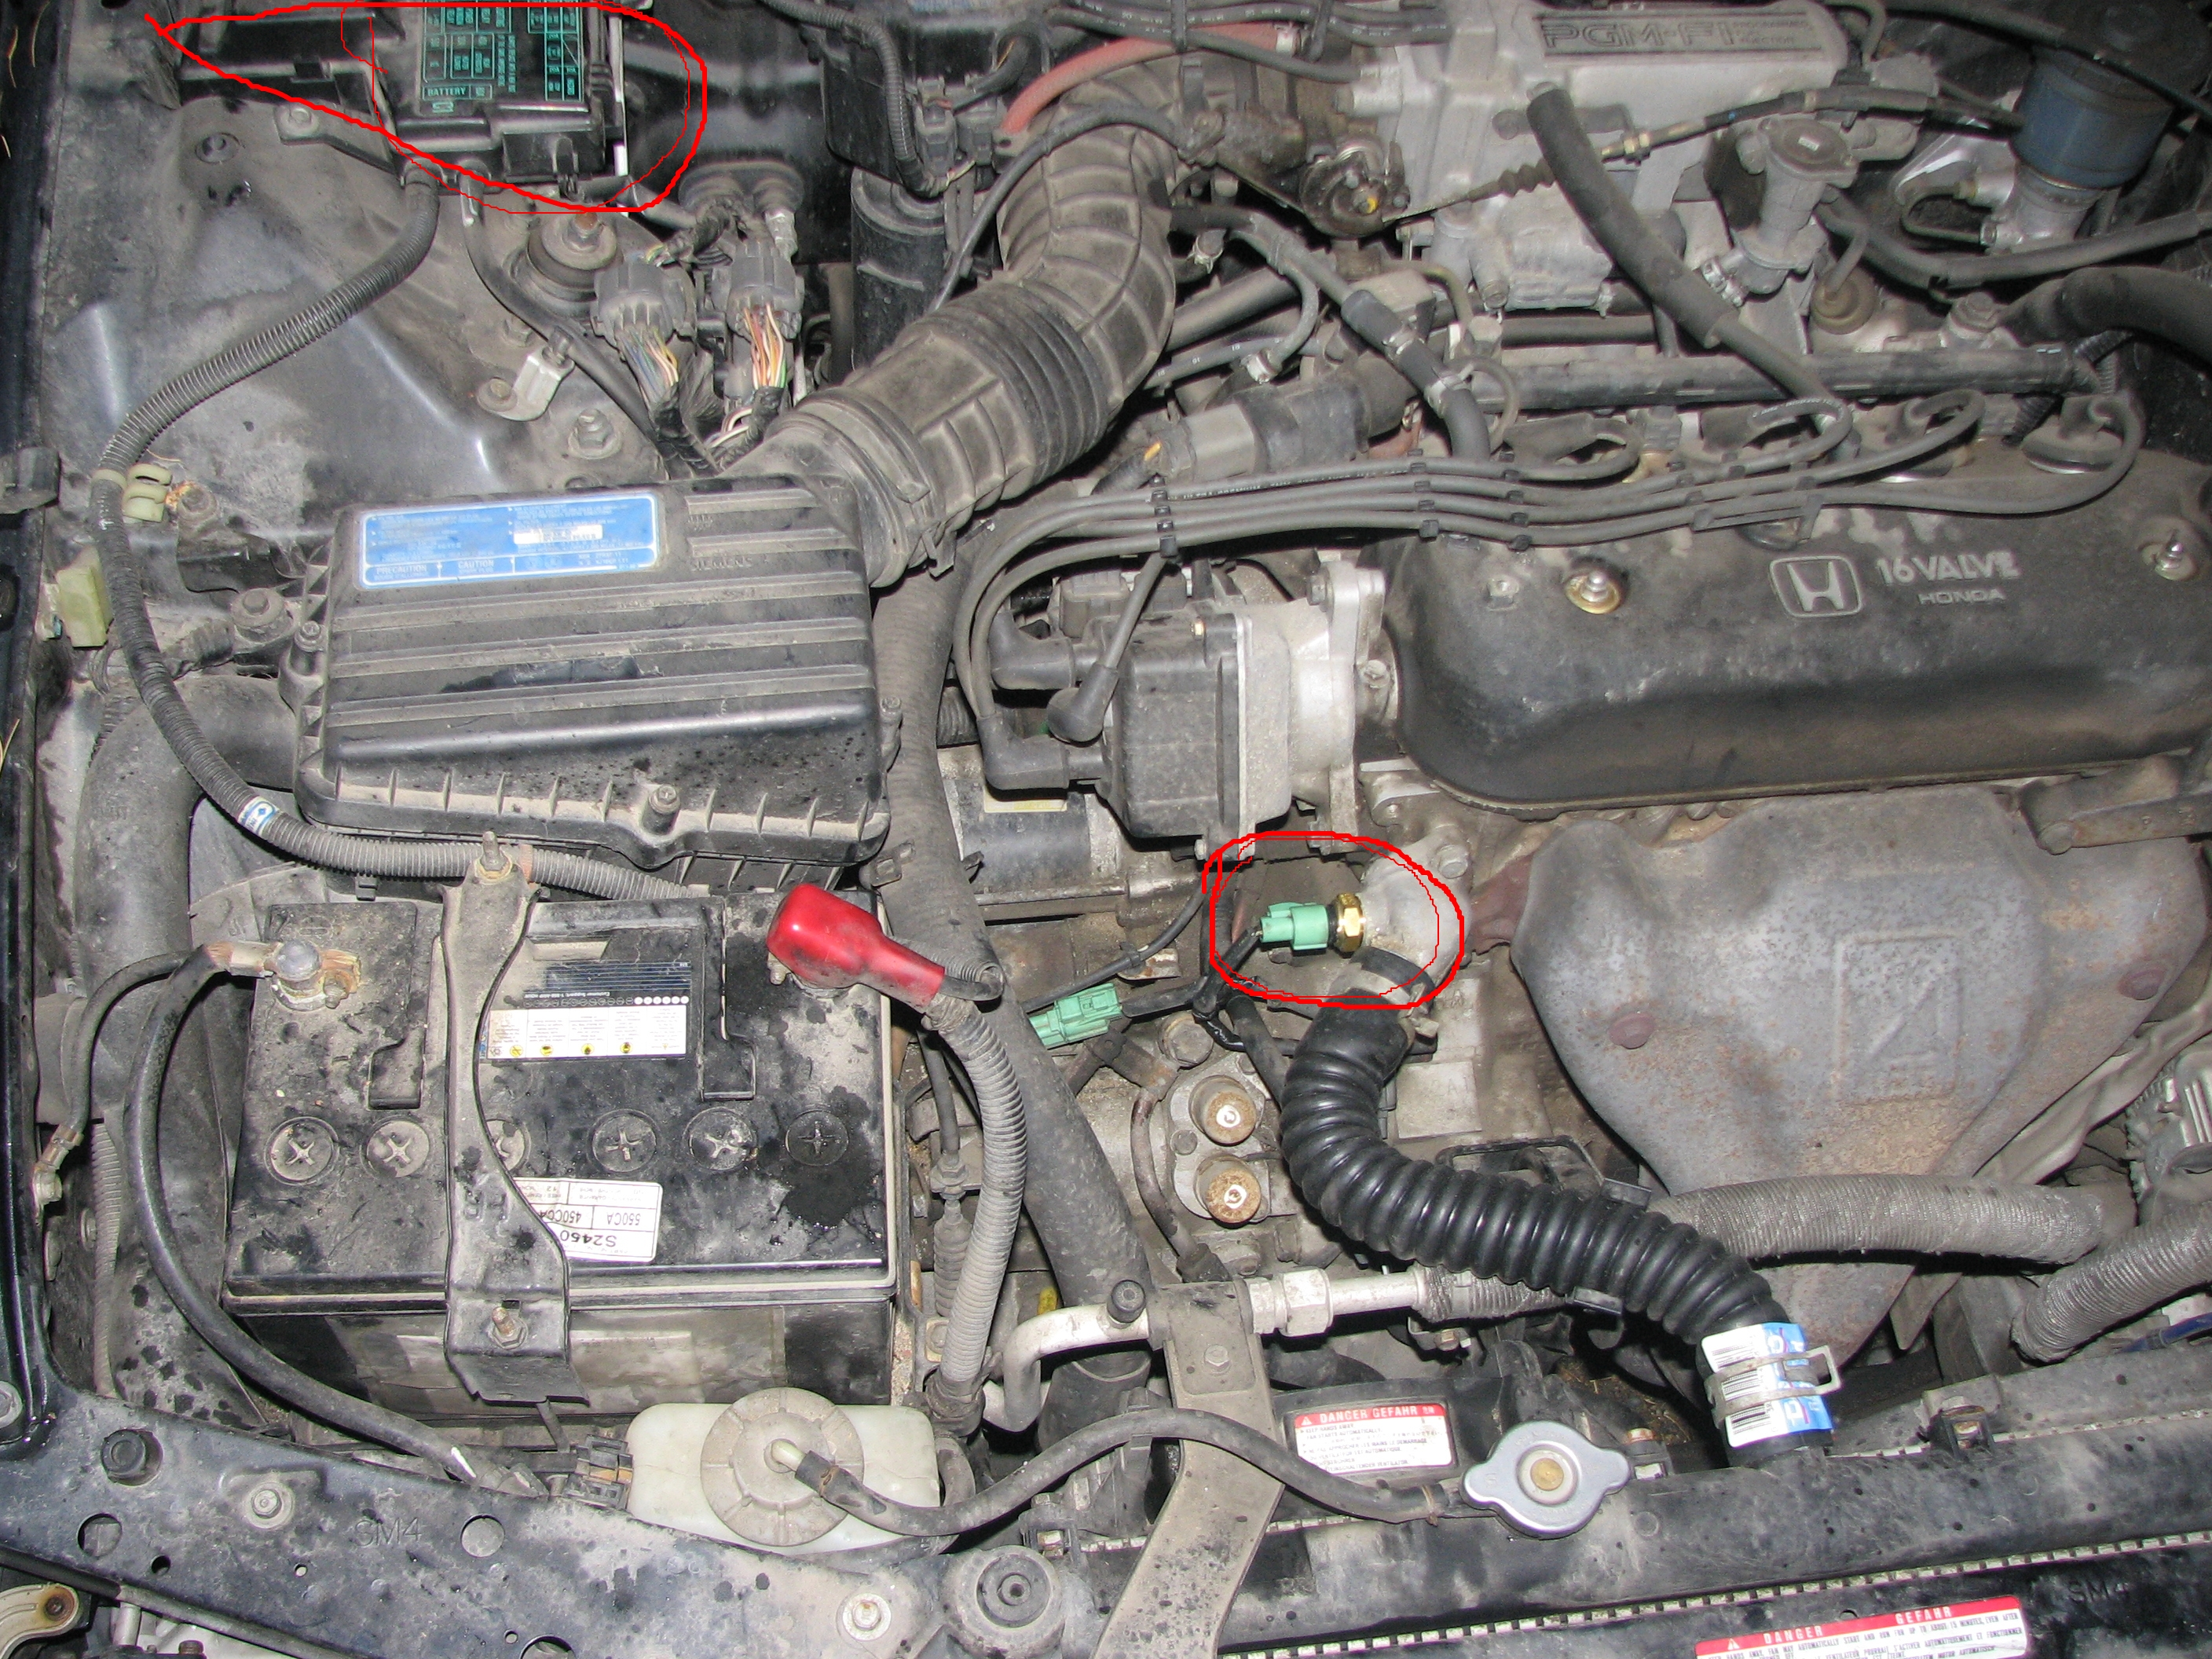 img_8220_modified 1992 honda accord fan won't turn off the blog of mark 1991 honda accord cooling fan wiring diagram at reclaimingppi.co